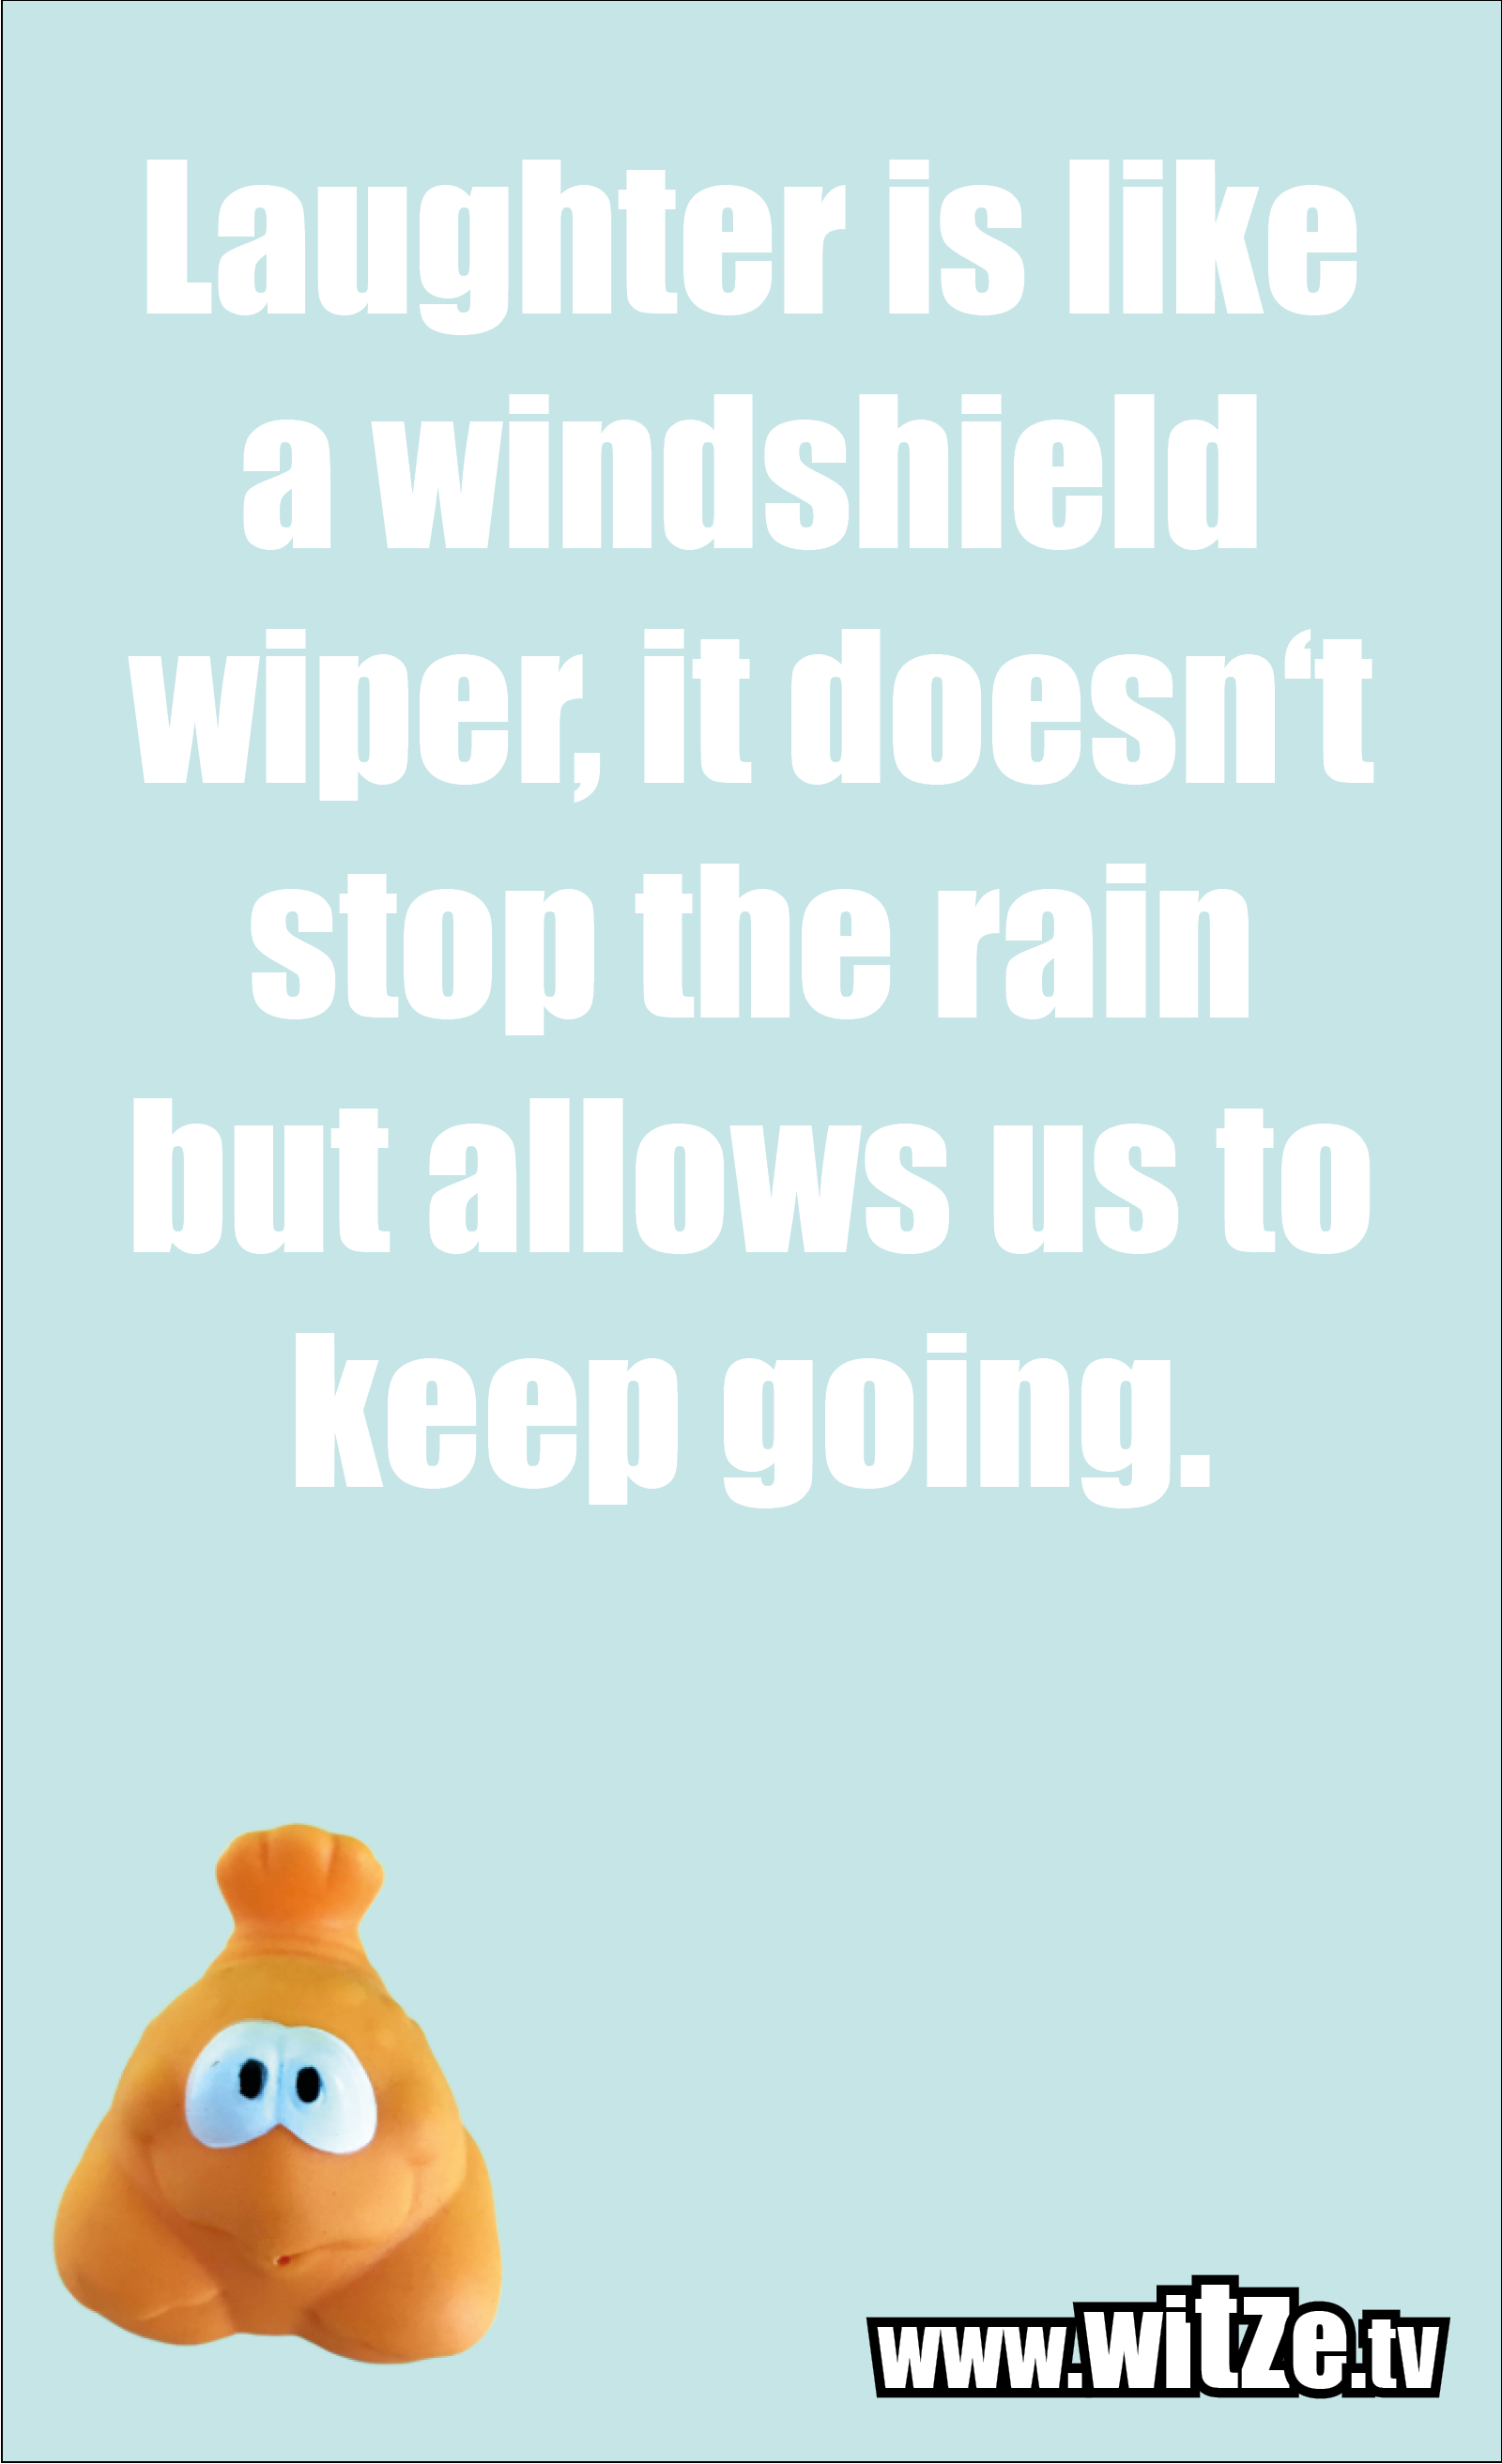 Funny sayings… Laughter is like a windshield wiper, it doesn't stop the rain but allows us to keep going.